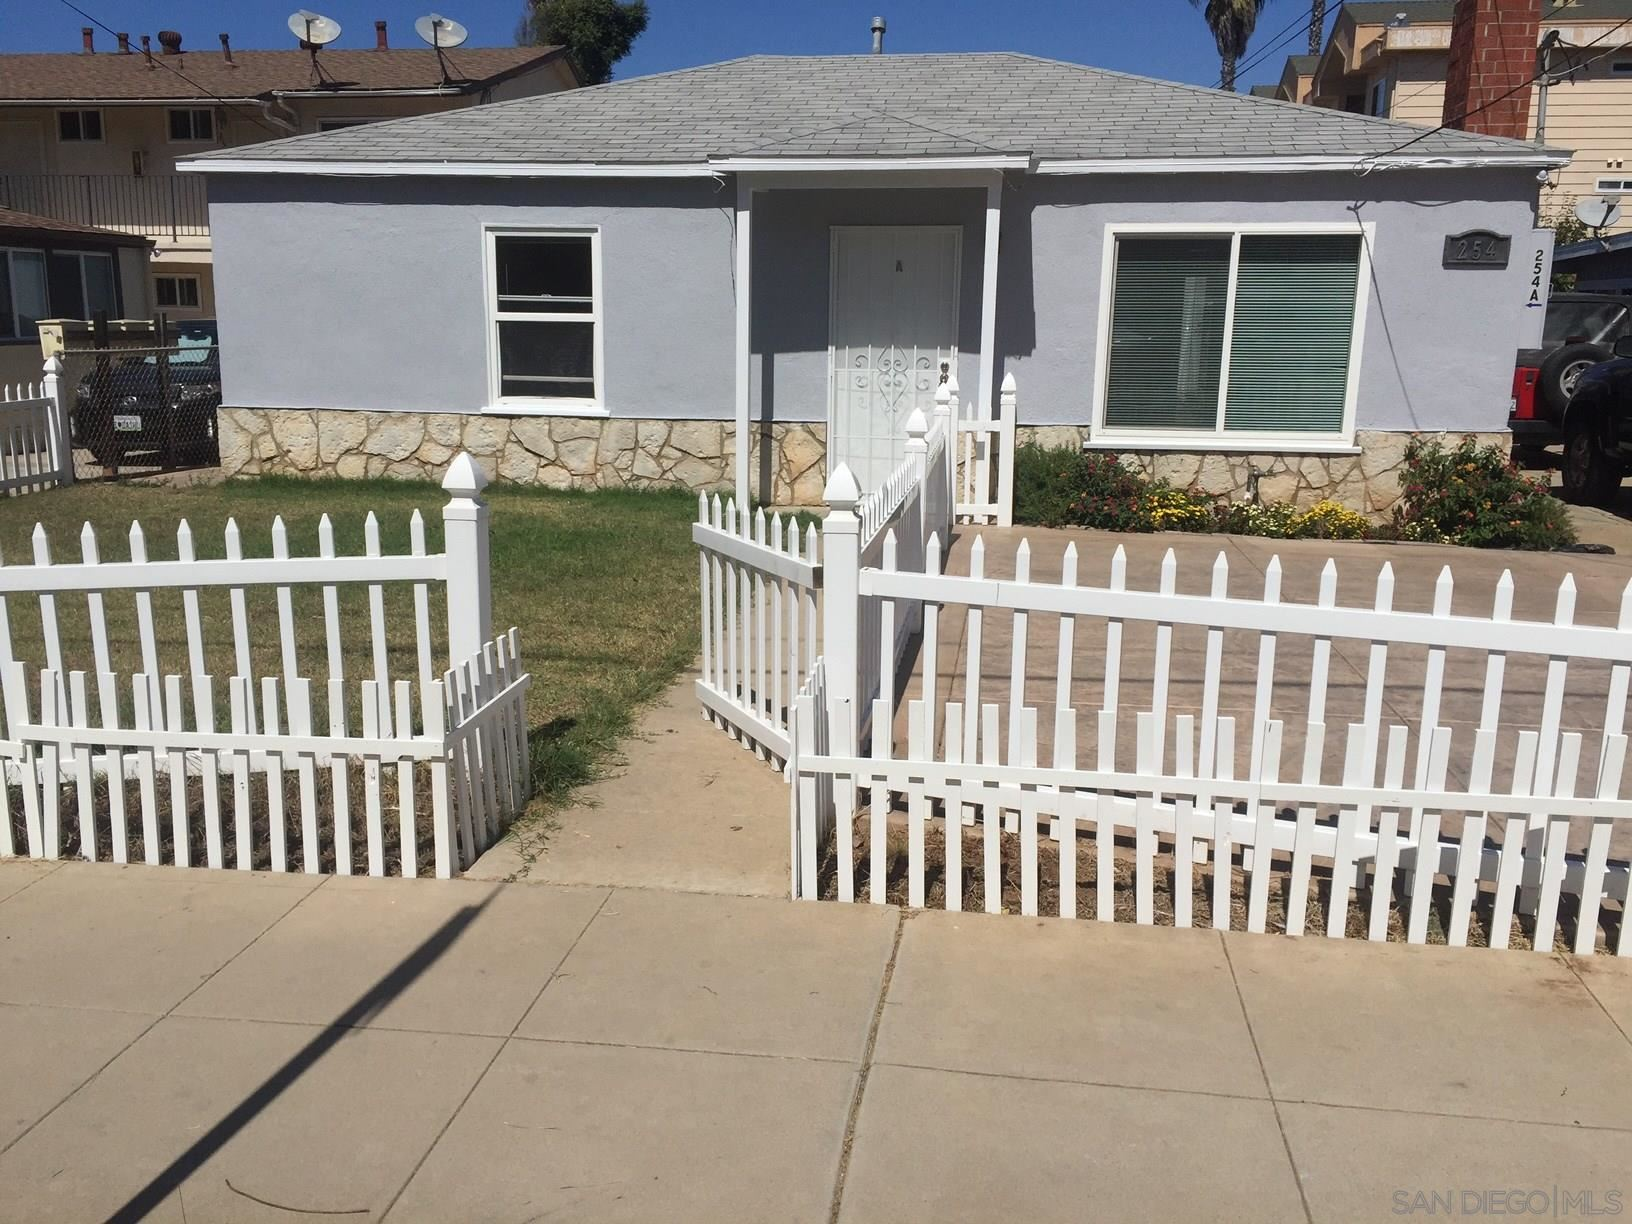 Photo of 254 Donax Ave, Imperial Beach, CA 91932 (MLS # 210008765)